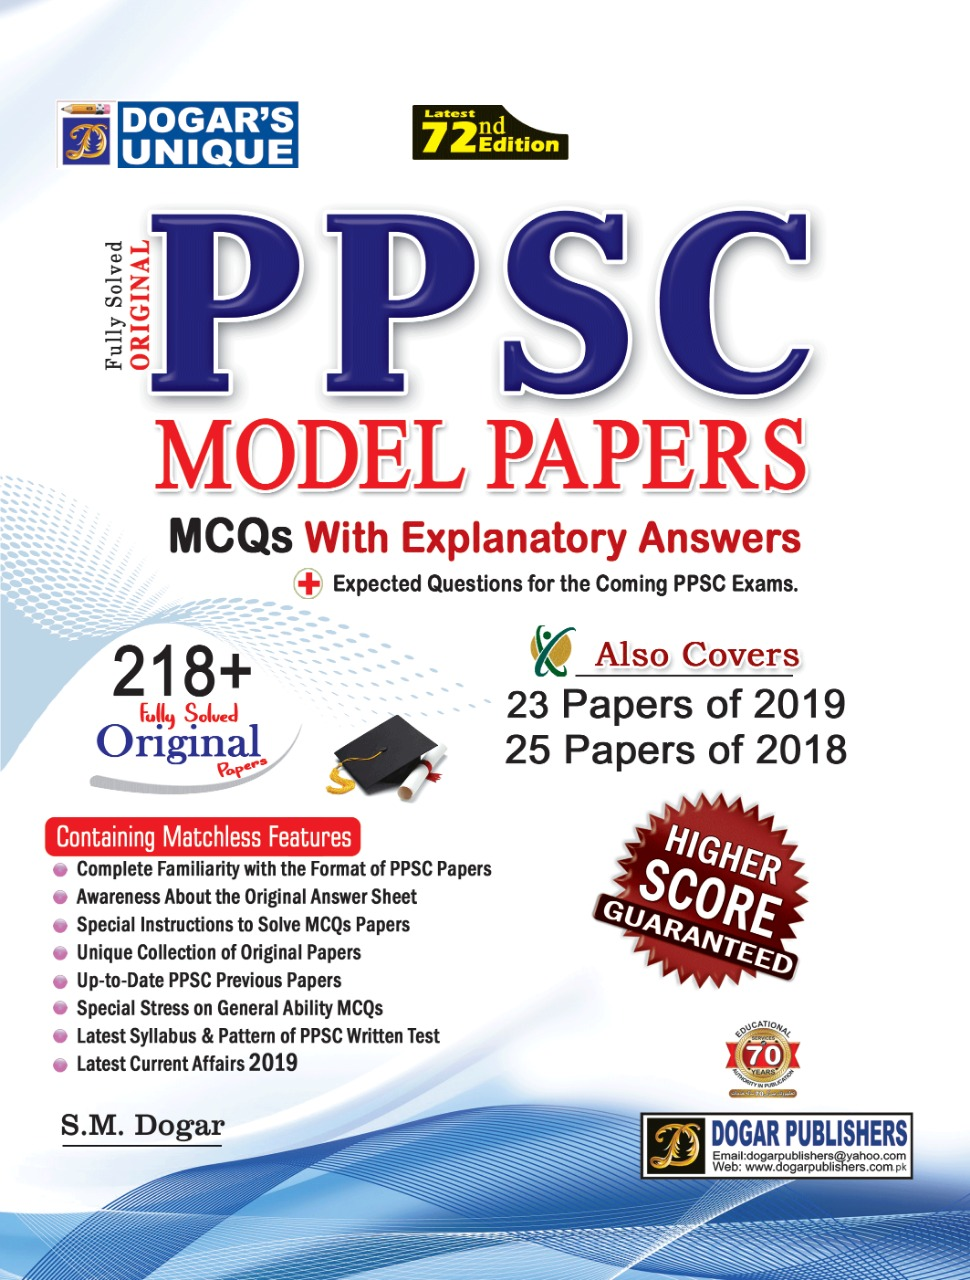 PPSC Model Papers MCQs With Explanatory Answers Latest 72nd Edition Recruitment Test Guide Latest Edition 2019